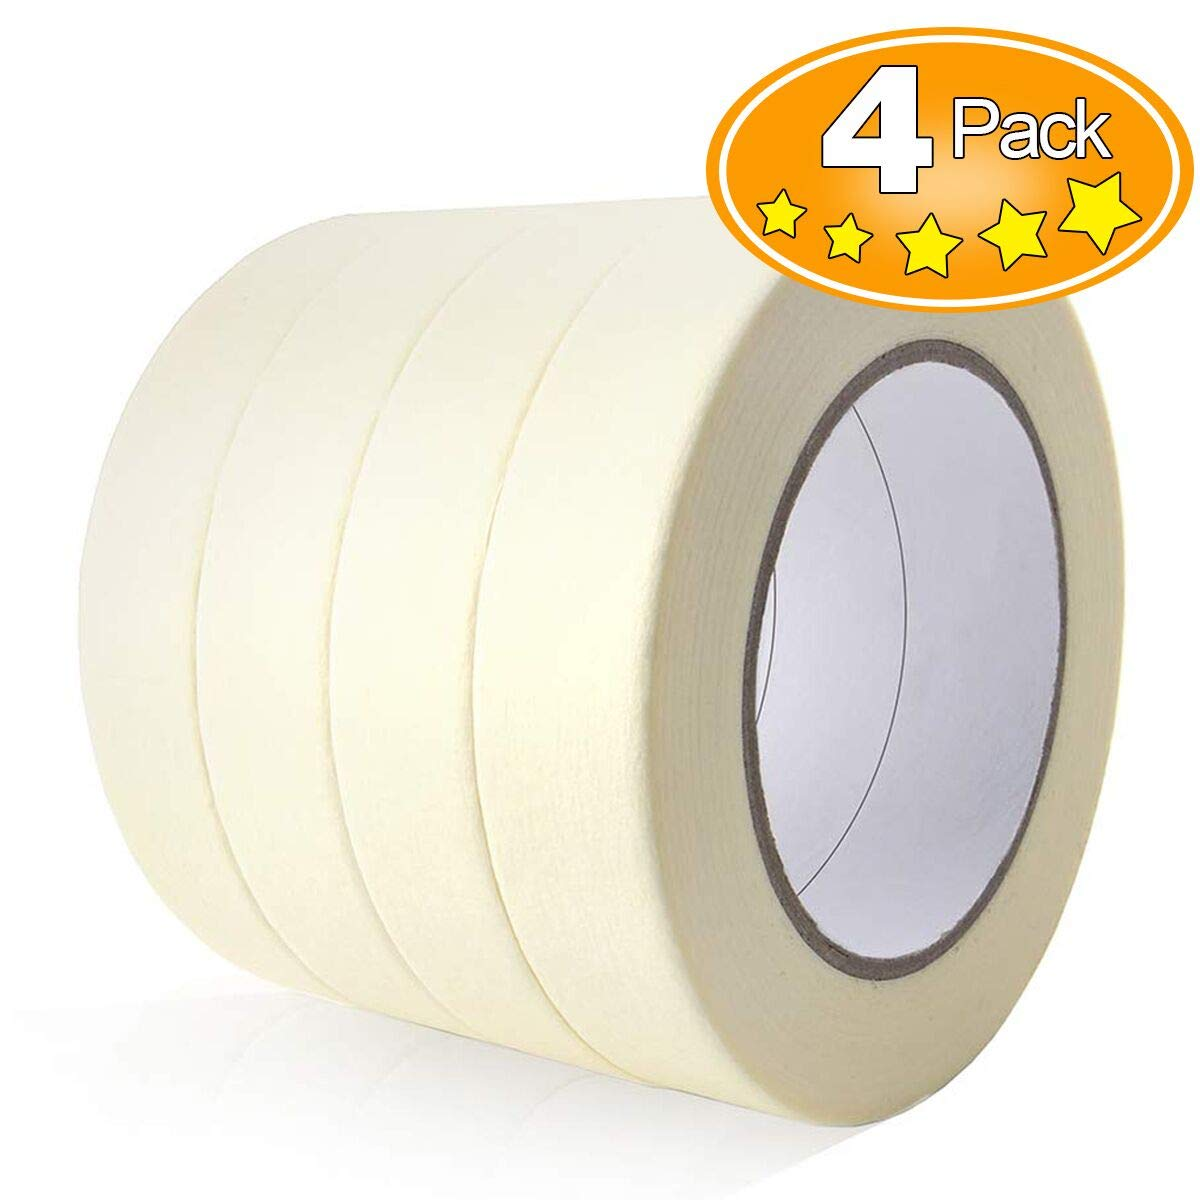 General Purpose Masking Tape, 0.94 inch x 60 Yards Painter's Tape, Great for Painting, Home, Office, School Stationery, Arts, Crafts, 4 Rolls by TIANBO FIRST